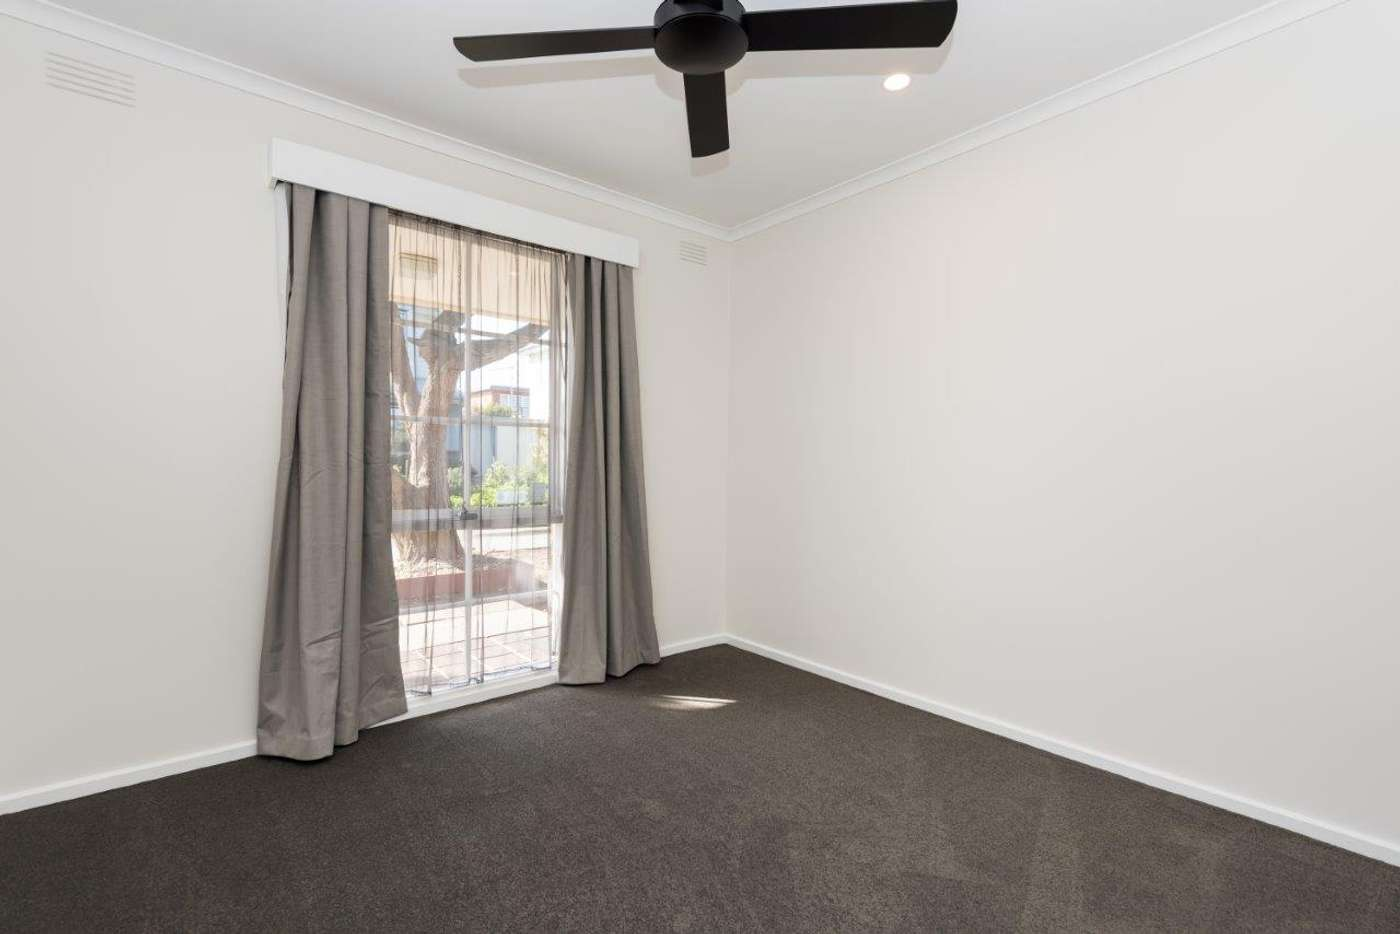 Seventh view of Homely unit listing, 1/10 King Street, Mornington VIC 3931